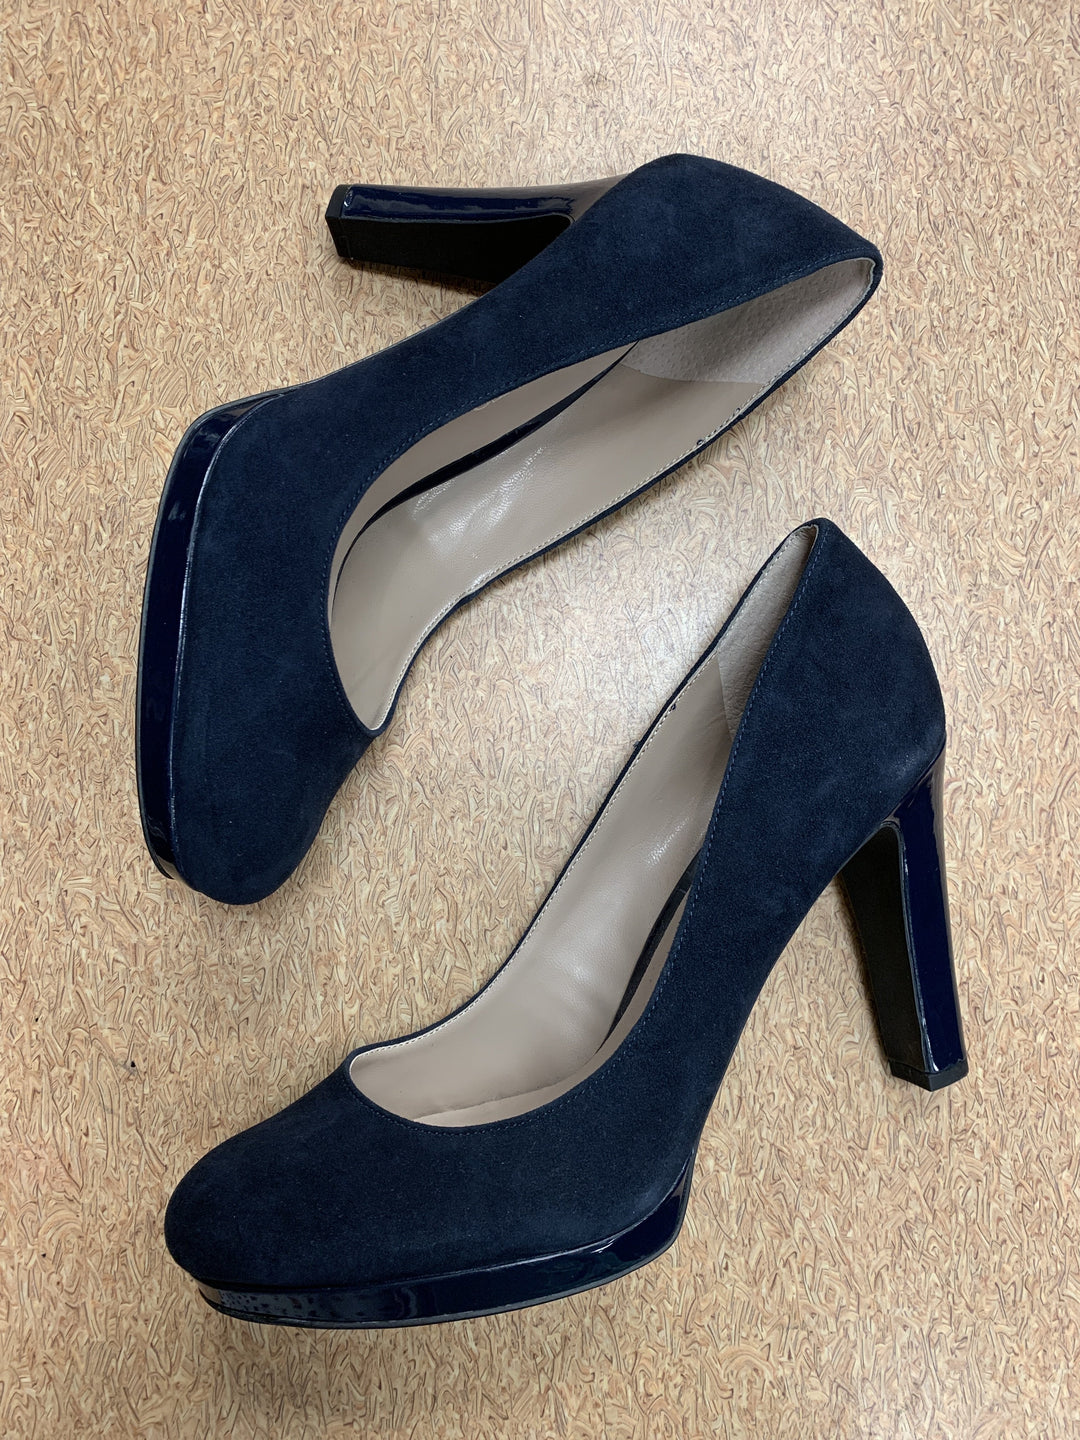 Primary Photo - brand: franco sarto , style: sandals high , color: navy , size: 8 , sku: 125-3916-56379